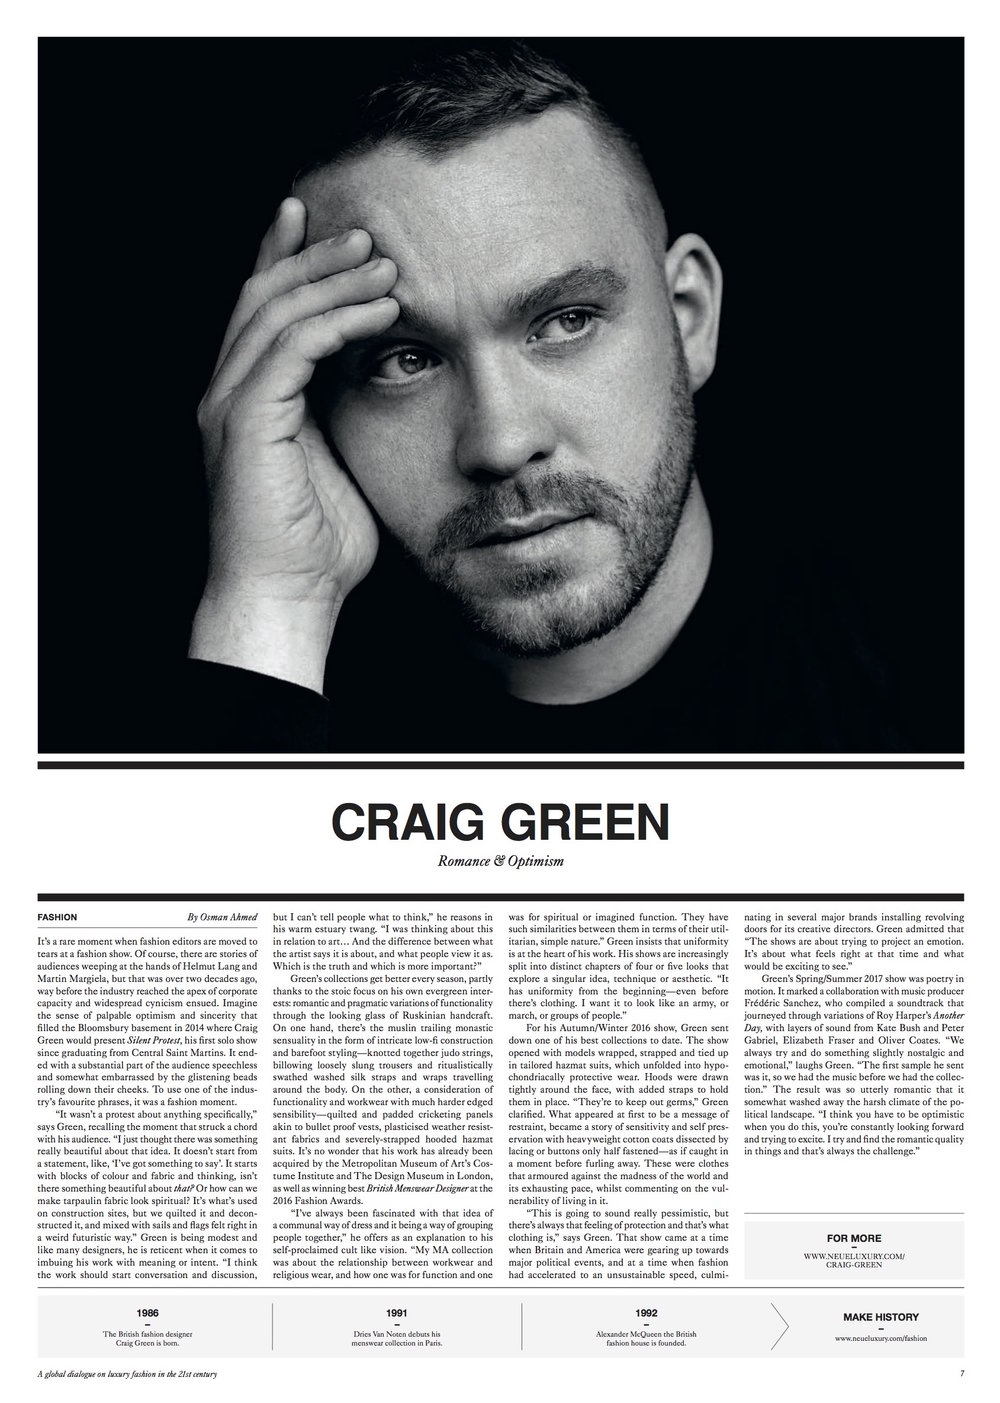 Craig Green profile